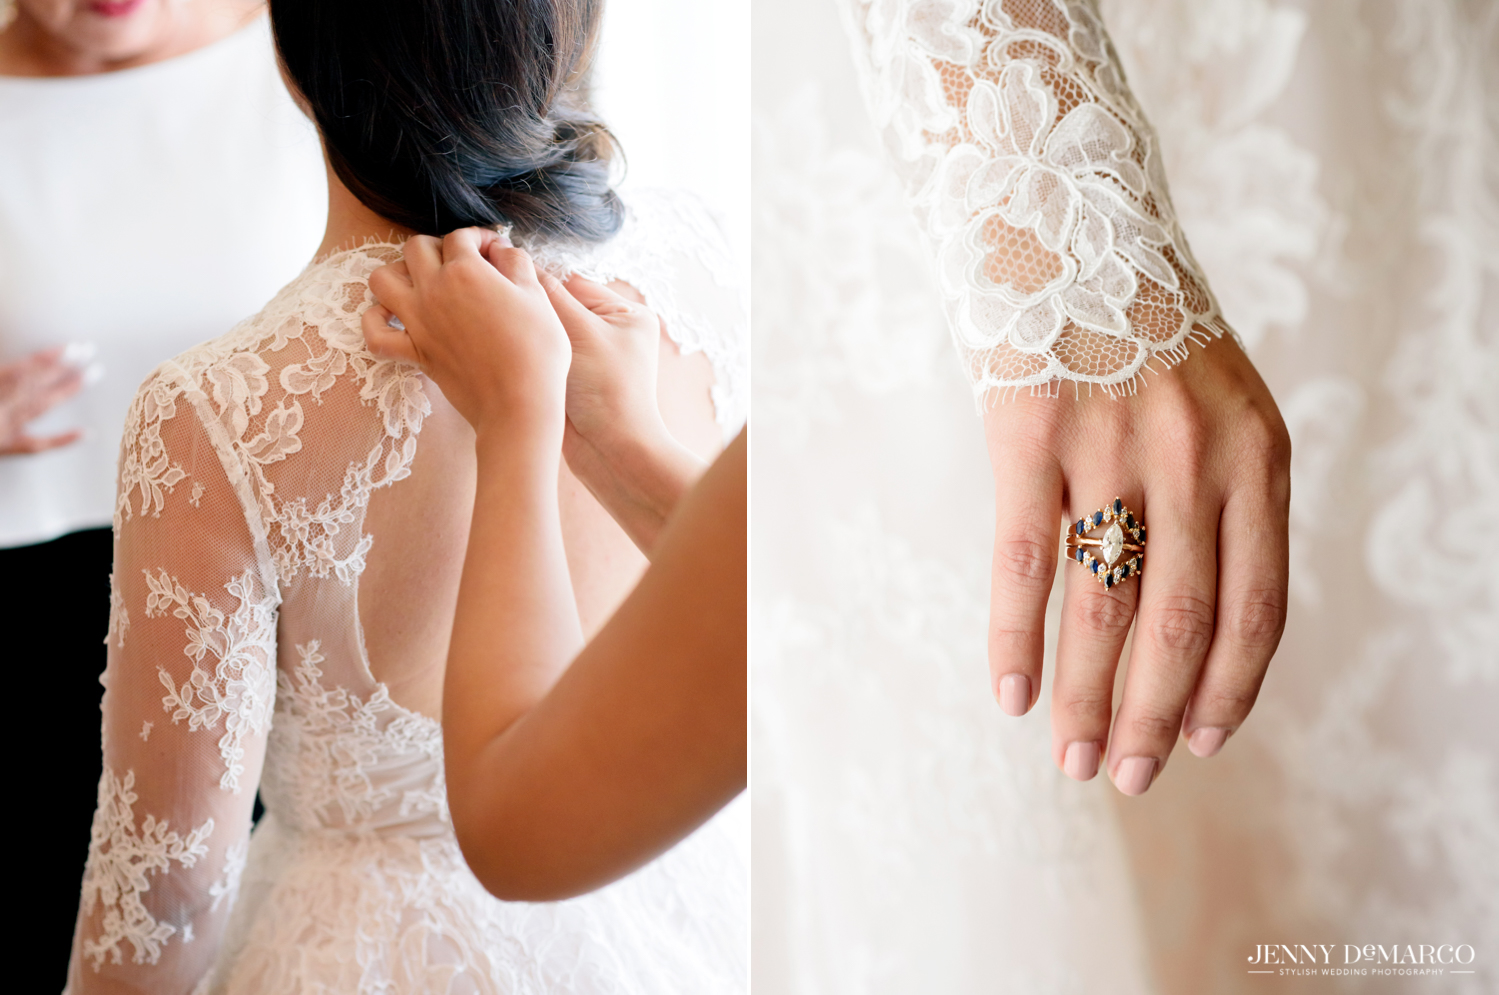 Bride putting on her lace wedding dress and bride's sapphire and diamond engagement ring